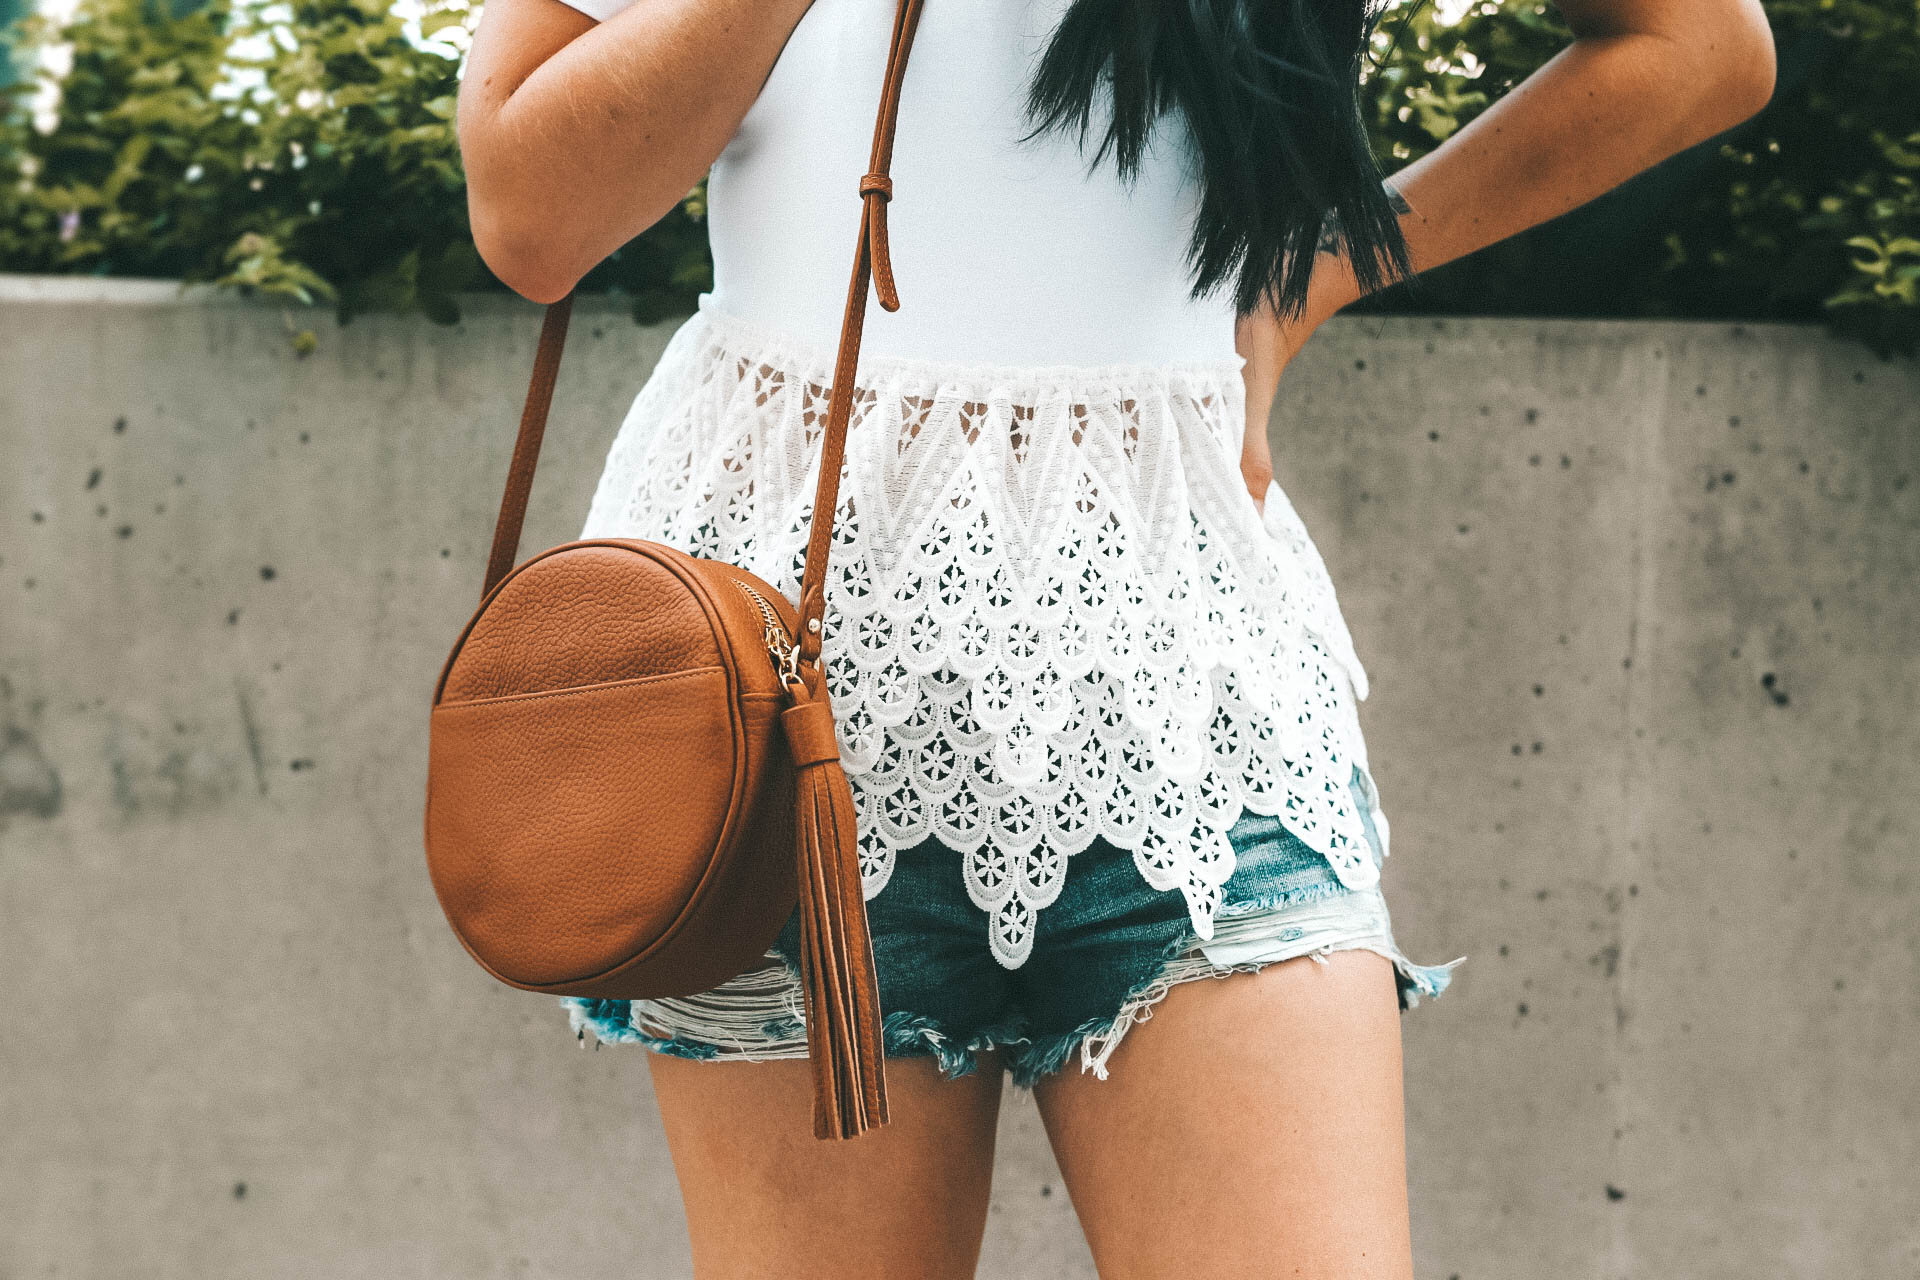 the perfect white lace peplum top for summer from Chicwish. It is under $30 and an affordable staple top. - {How to Wear a Crochet Peplum Top + Why They are so Flattering} featured by popular Austin fashion blogger Dressed to Kill